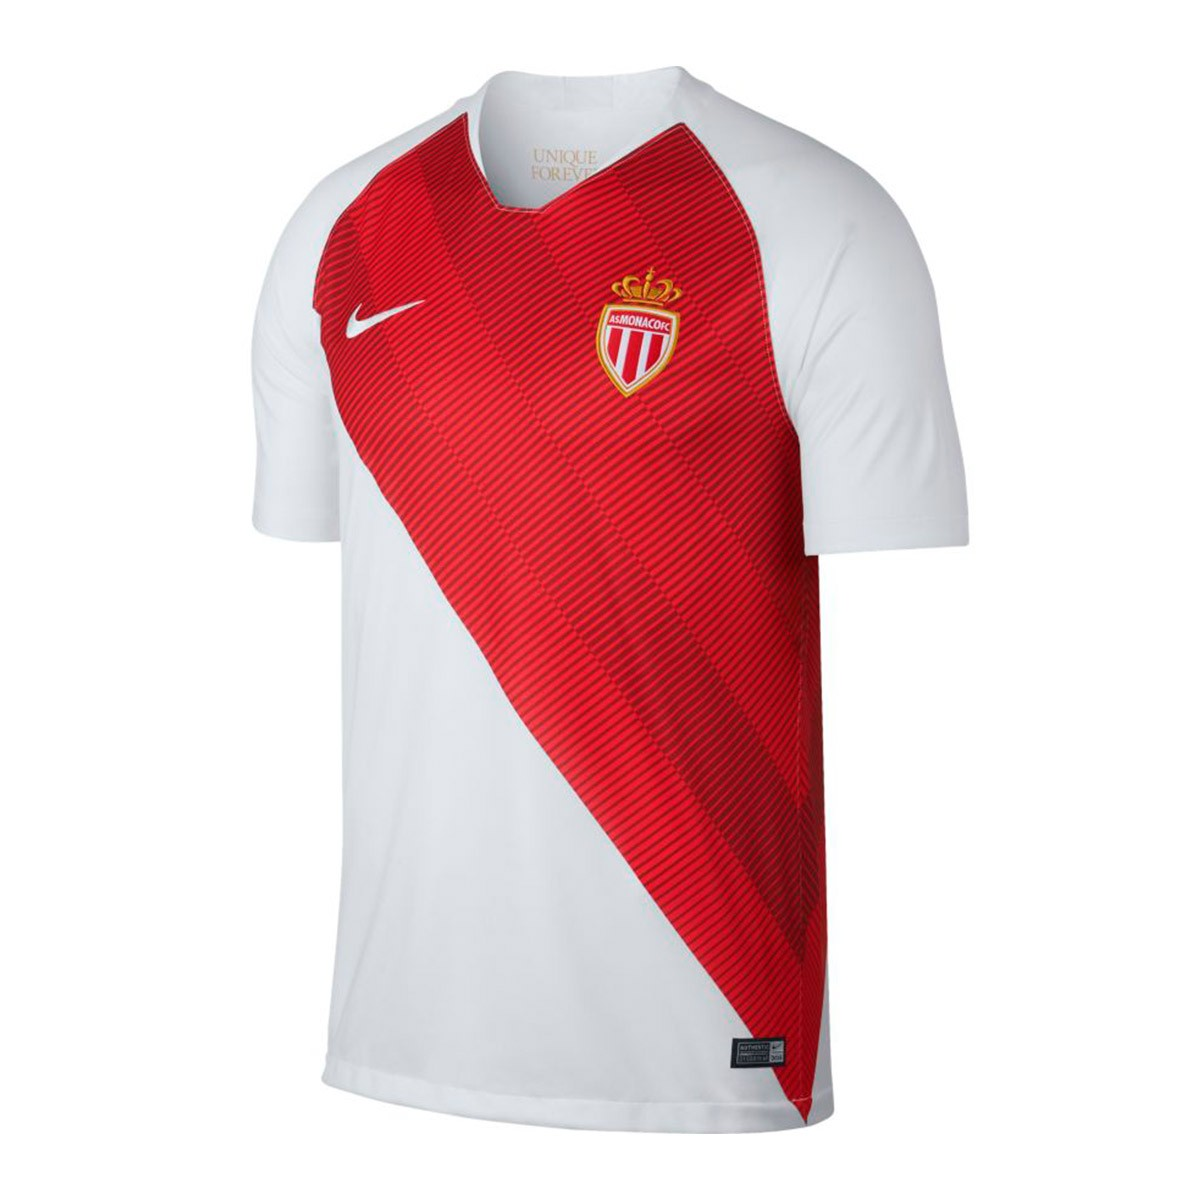 giacca AS Monaco merchandising